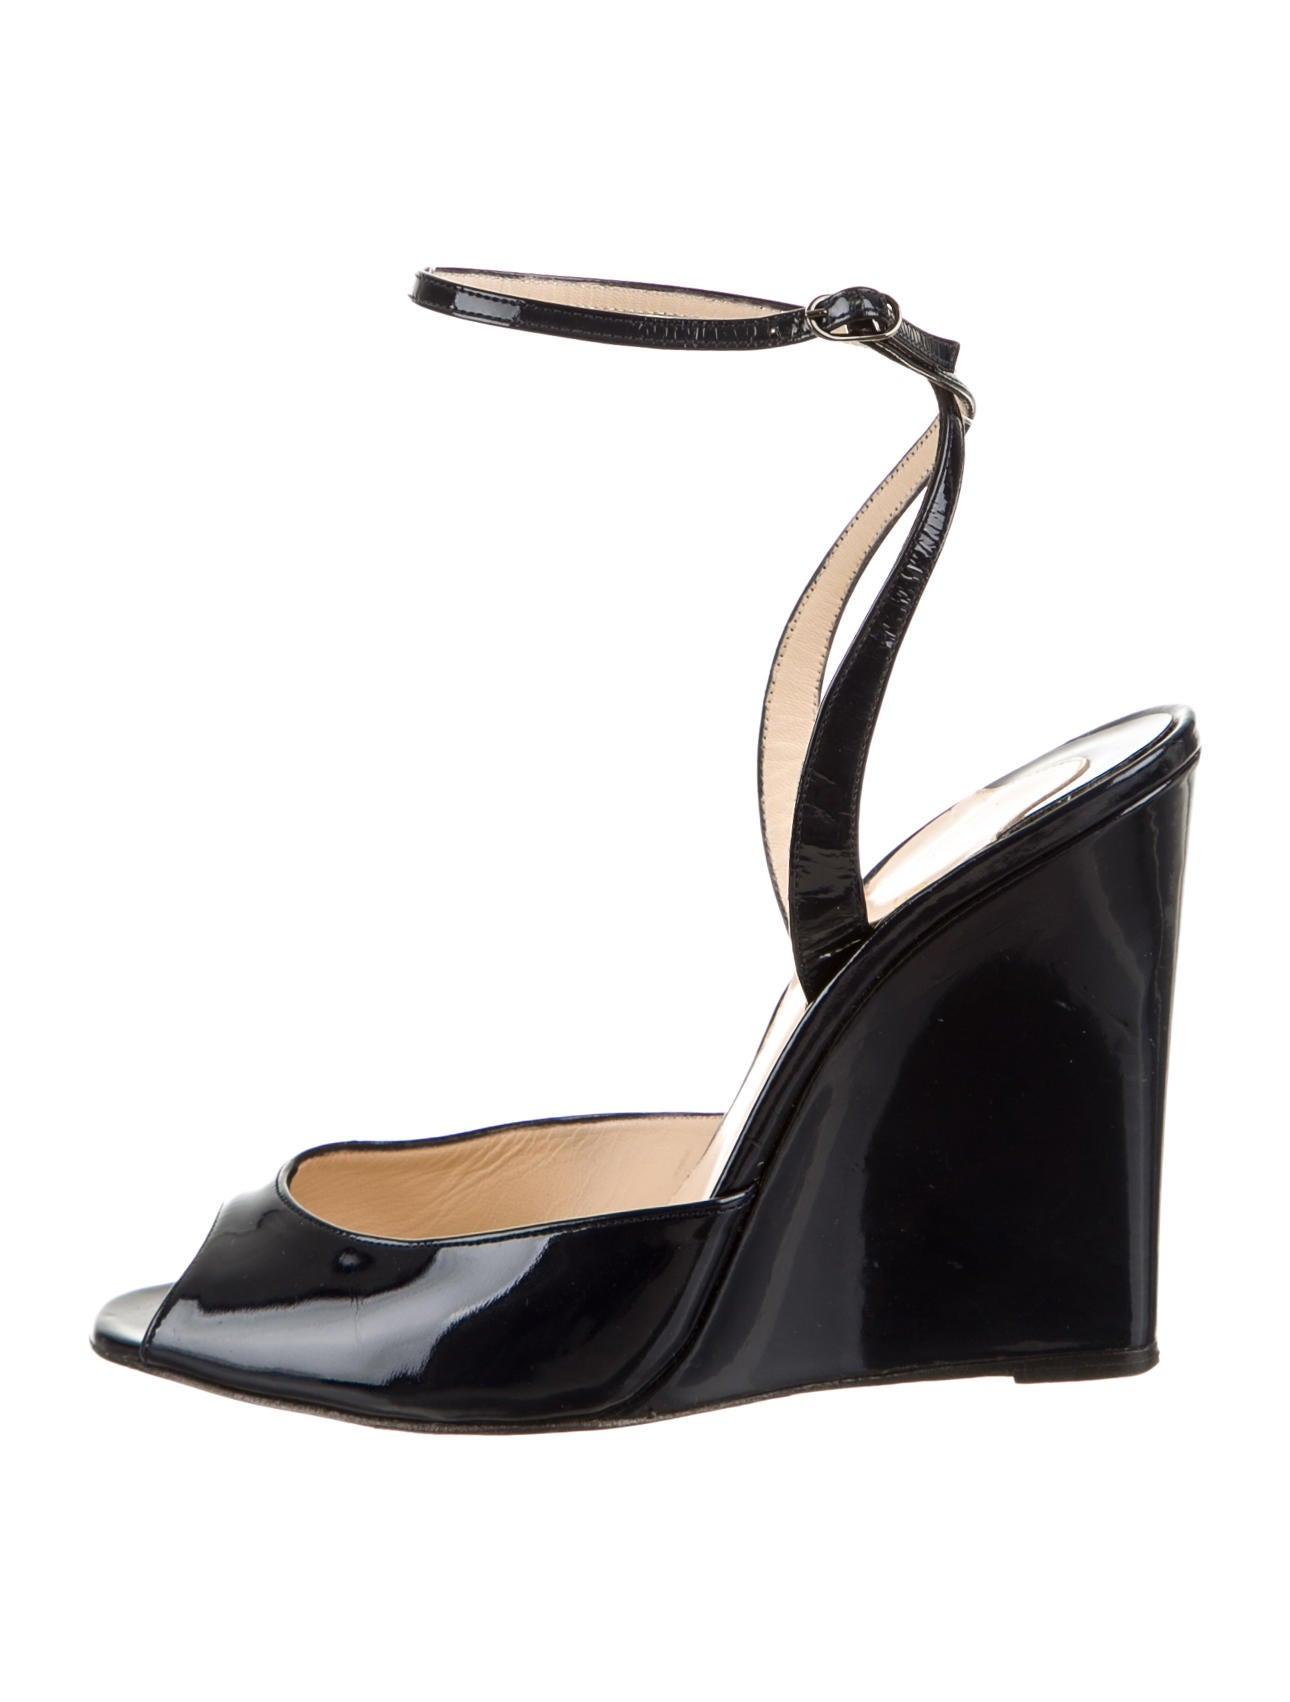 christian louboutin men shoes - christian louboutin peep-toe slingback wedges Navy blue patent ...